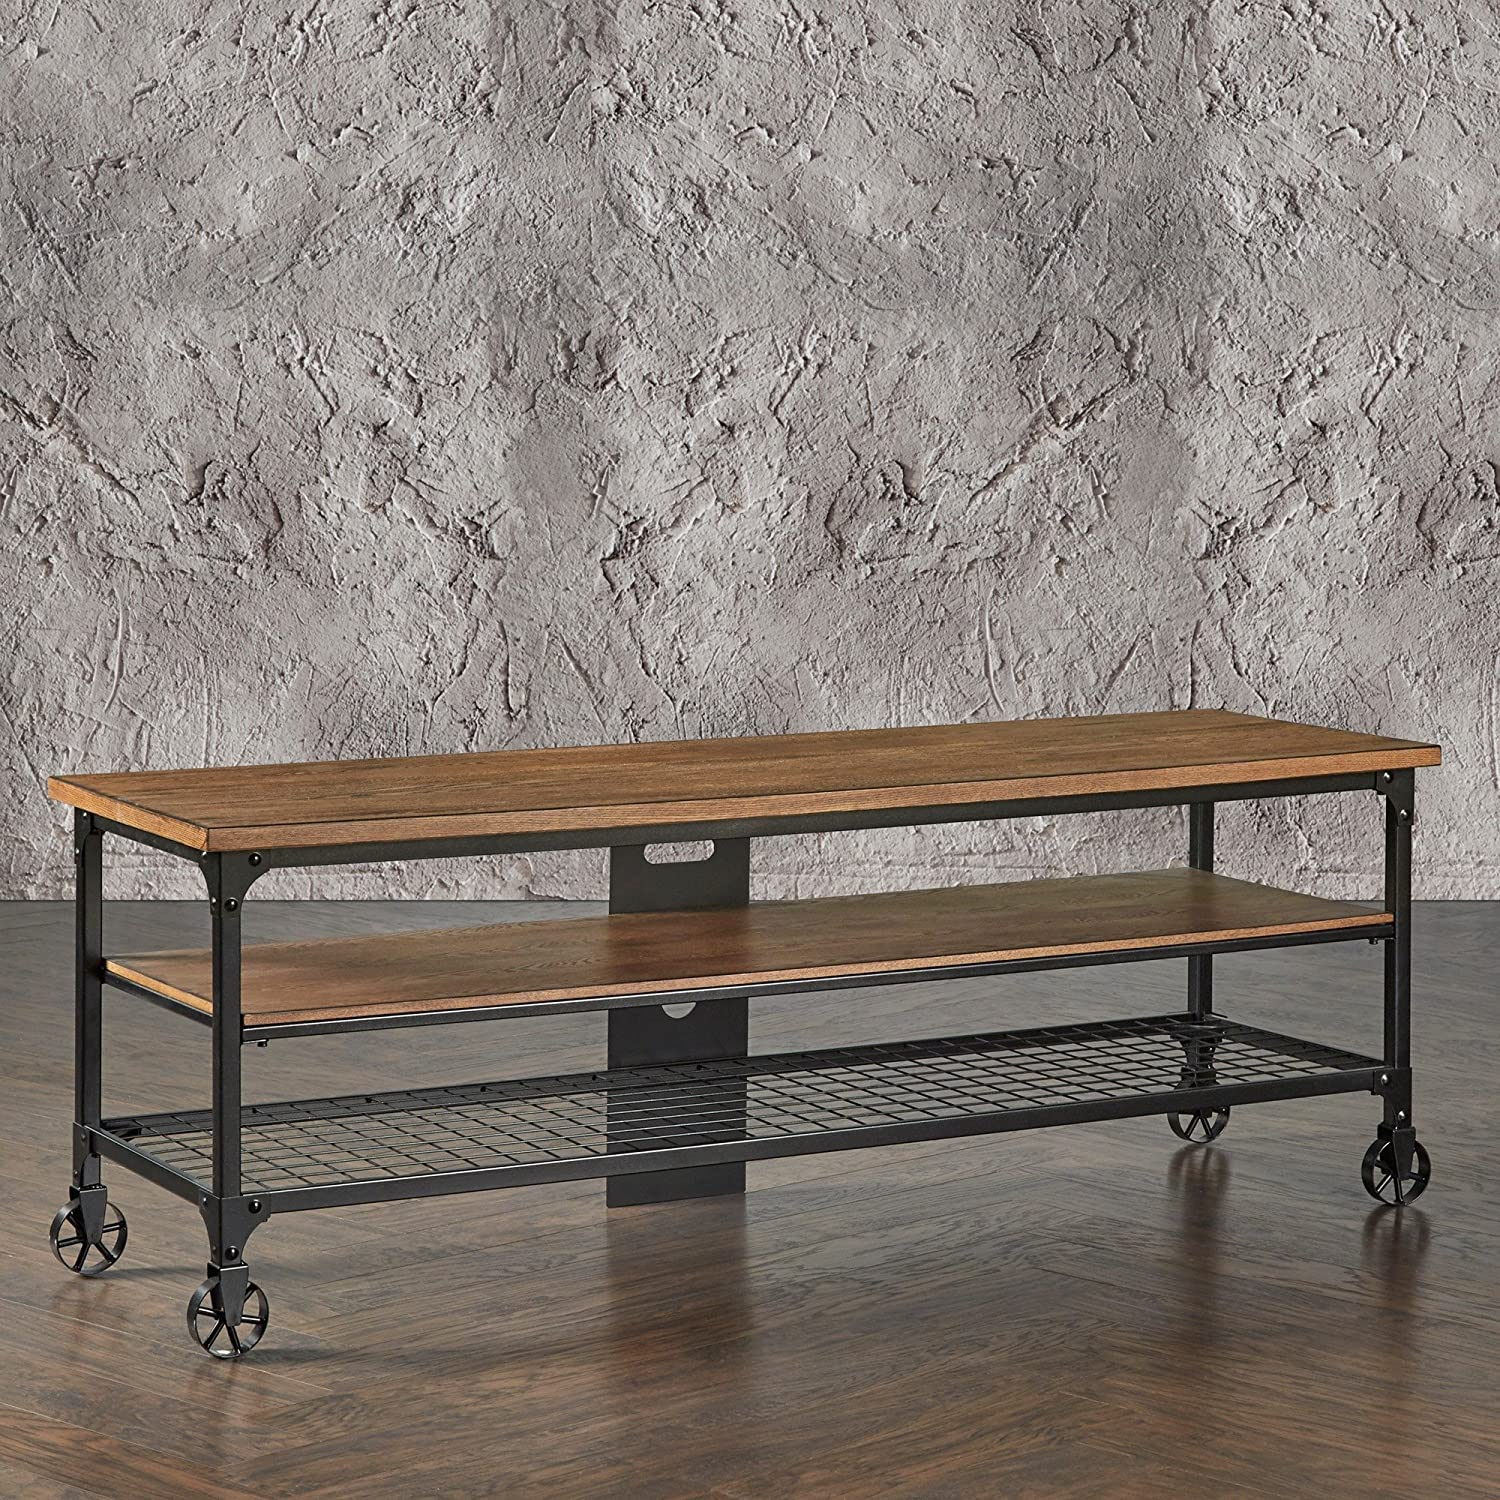 Amazon.com: Modern Industrial Rustic Riveted Black Metal & Wood TV Stand  with Decorative Wheels - Includes ModHaus Living (TM) Pen (65): Kitchen &  Dining